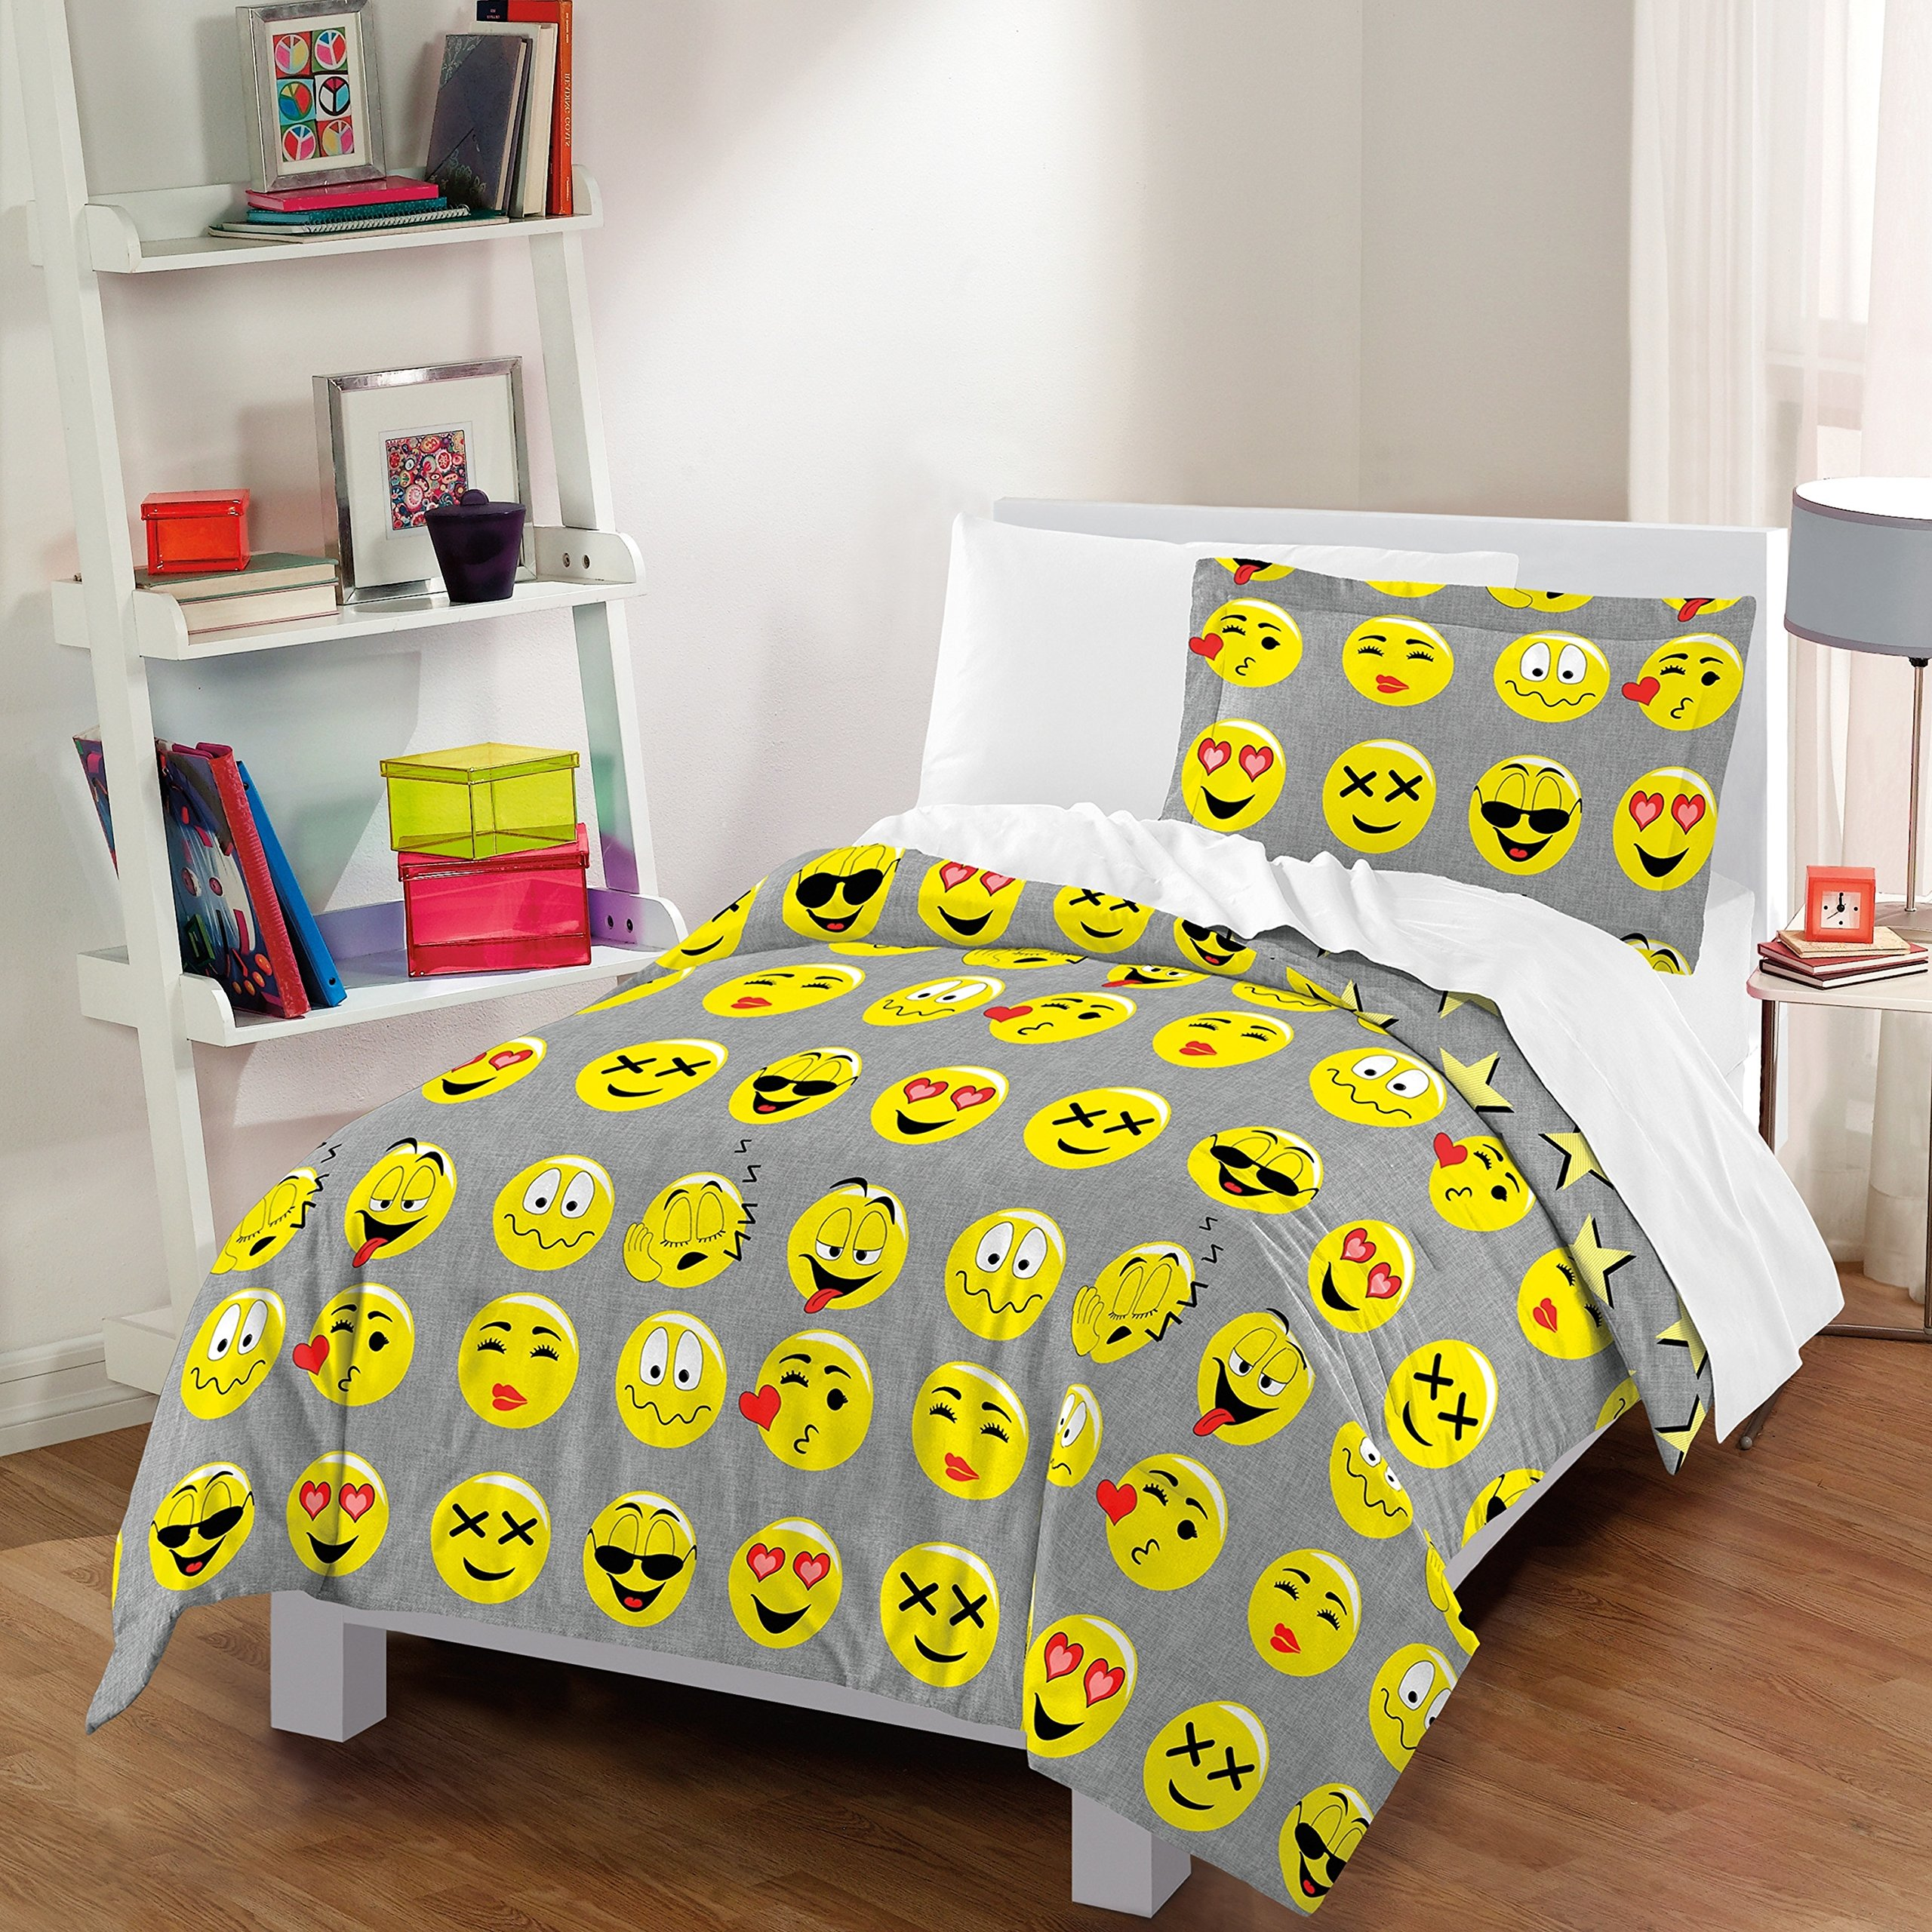 3 Piece Kids Emoji Star Comforter Full Queen Set, Boys Girls Grey Yellow Red Smiley Faces Themed Bedding, Fun Emoticons Smile Face Heart Love Eyes Cool Kiss Faces Theme, Cotton